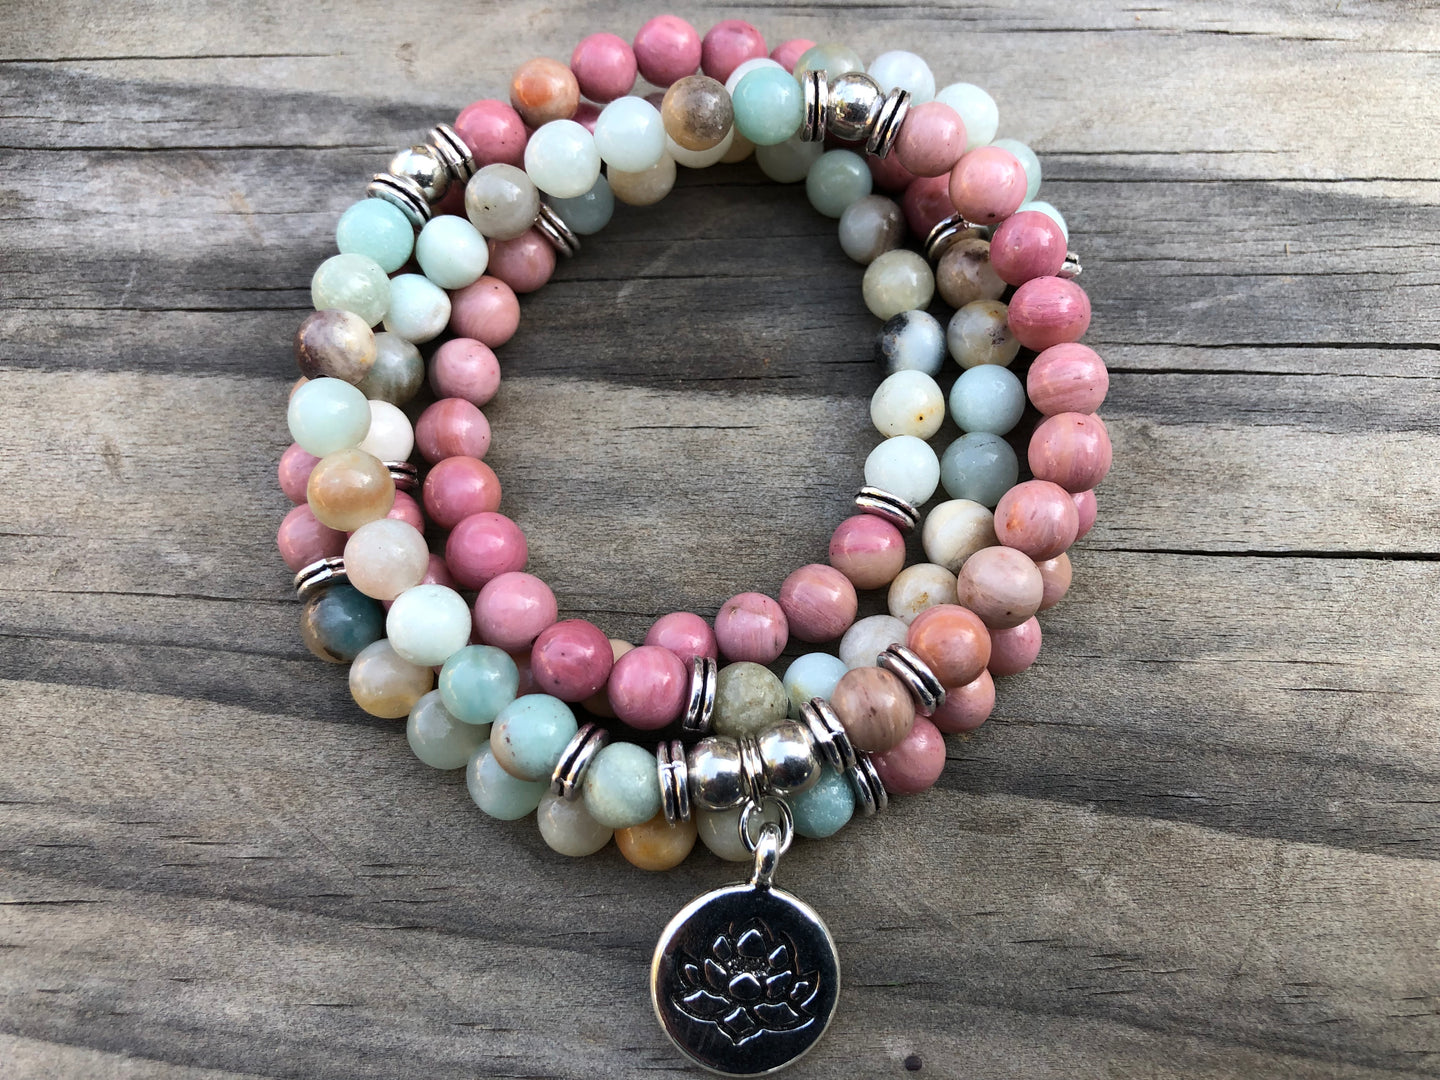 108 Mala 2 Gemstone  Bracelet or Necklace, mala beads 108 , Amazonite And Rhodochrosite